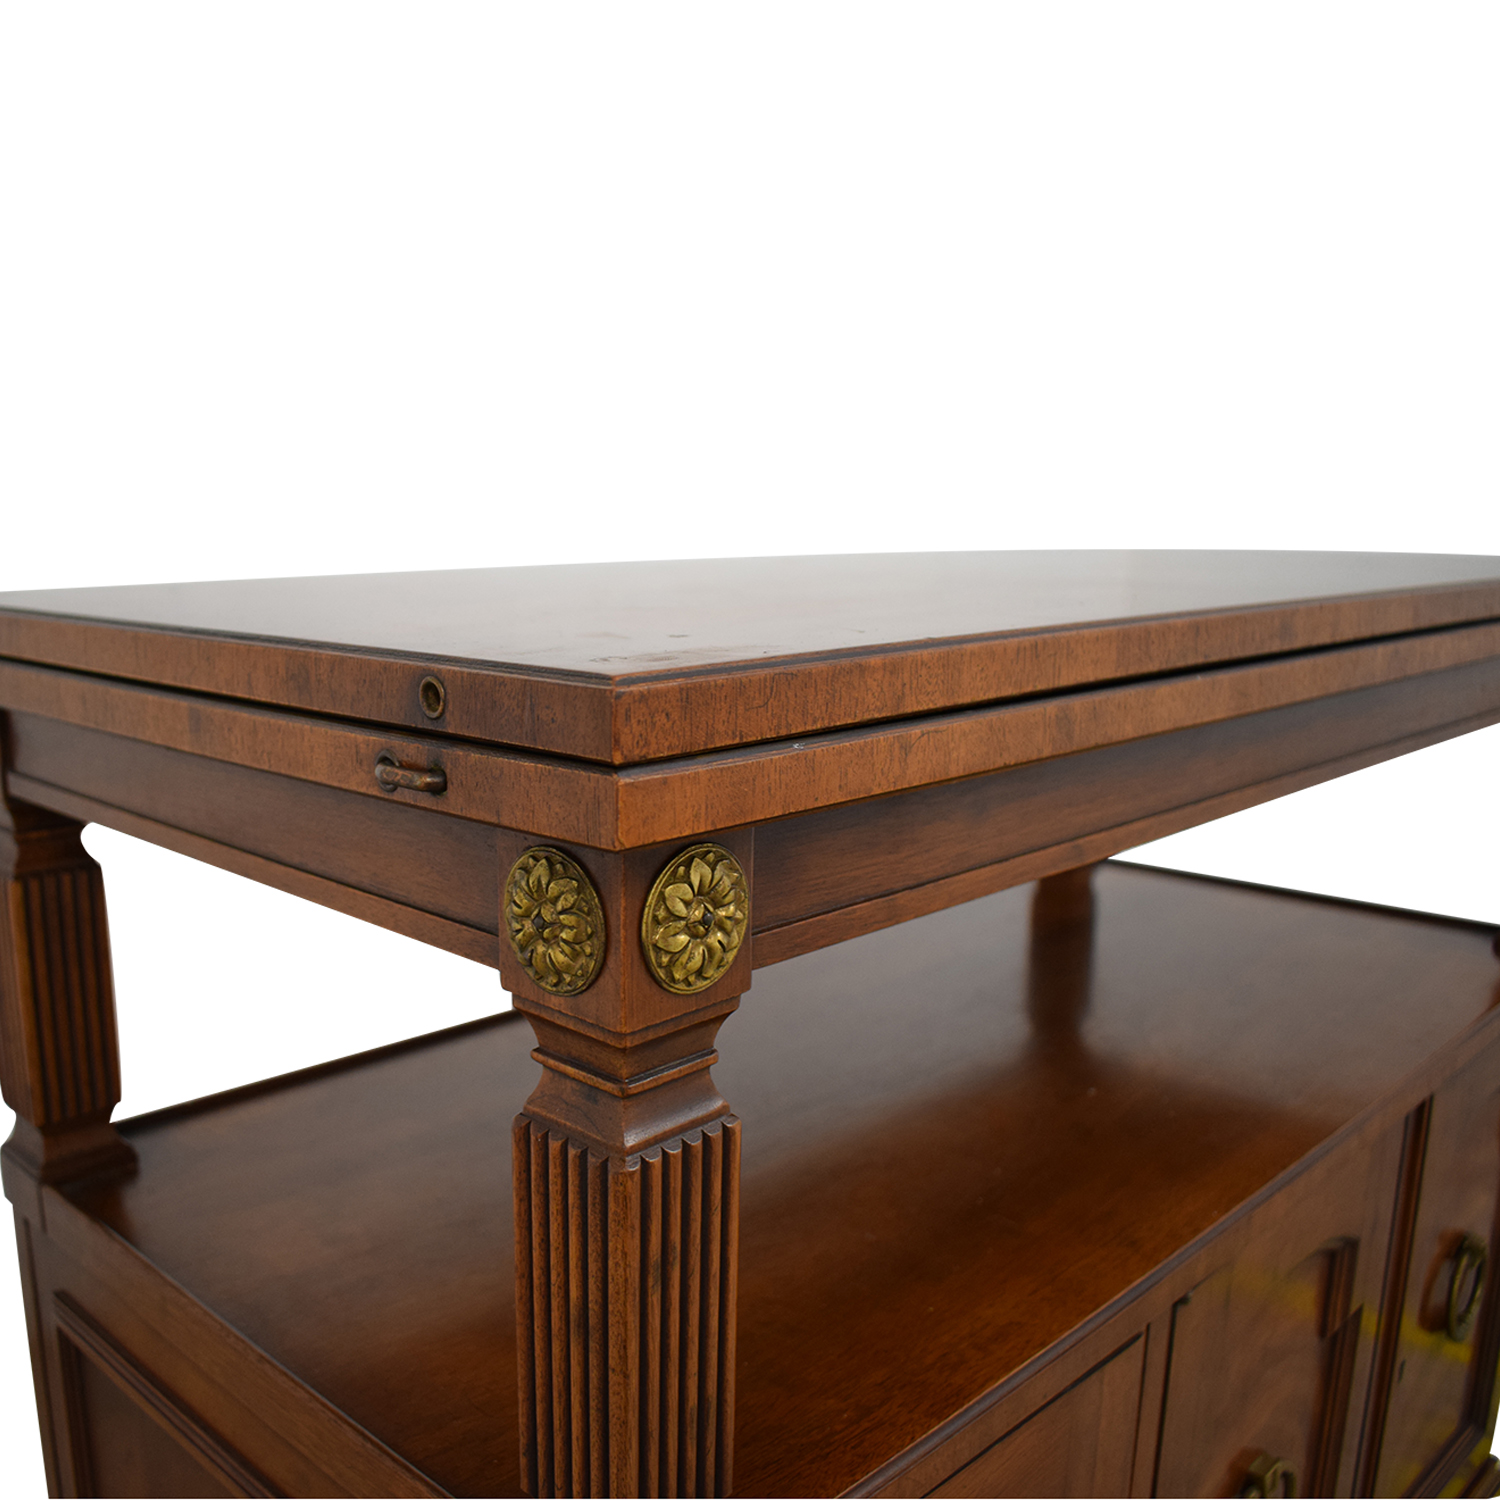 Drexel Heritage Drexel Heritage Traditional Wood Buffet Table second hand